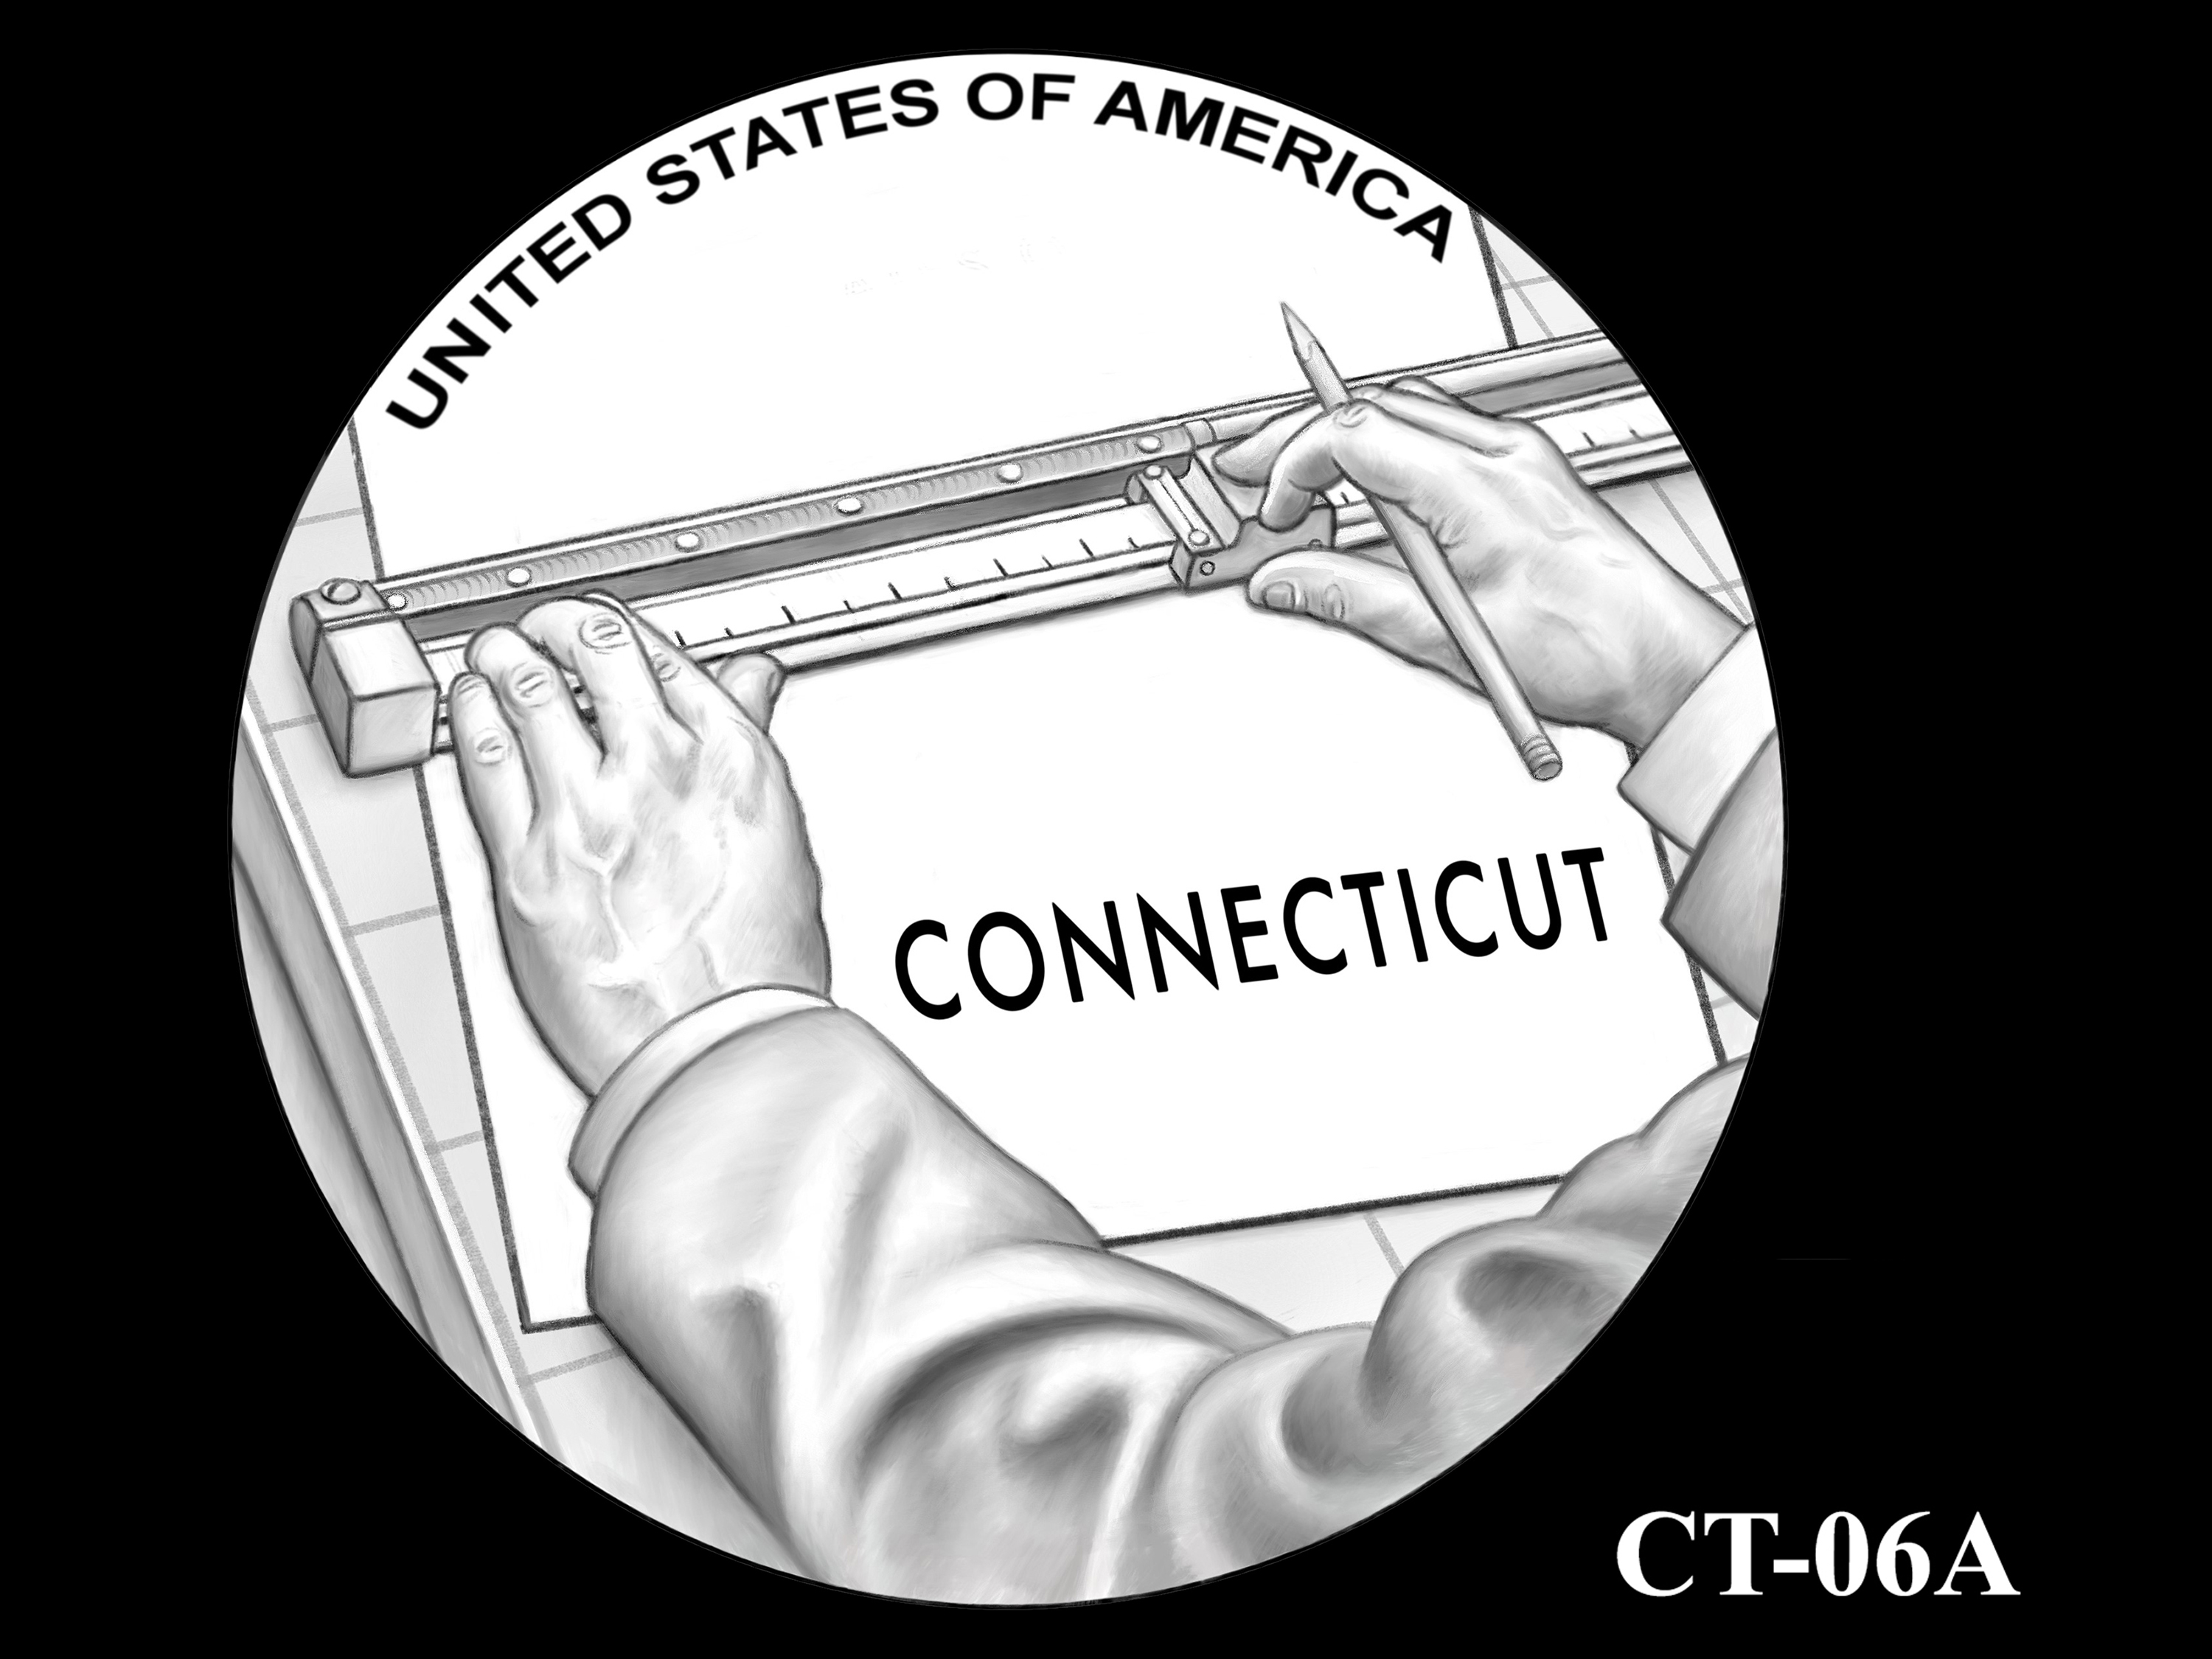 CT-06A -- 2020 American Innovation $1 Coin - Connecticut